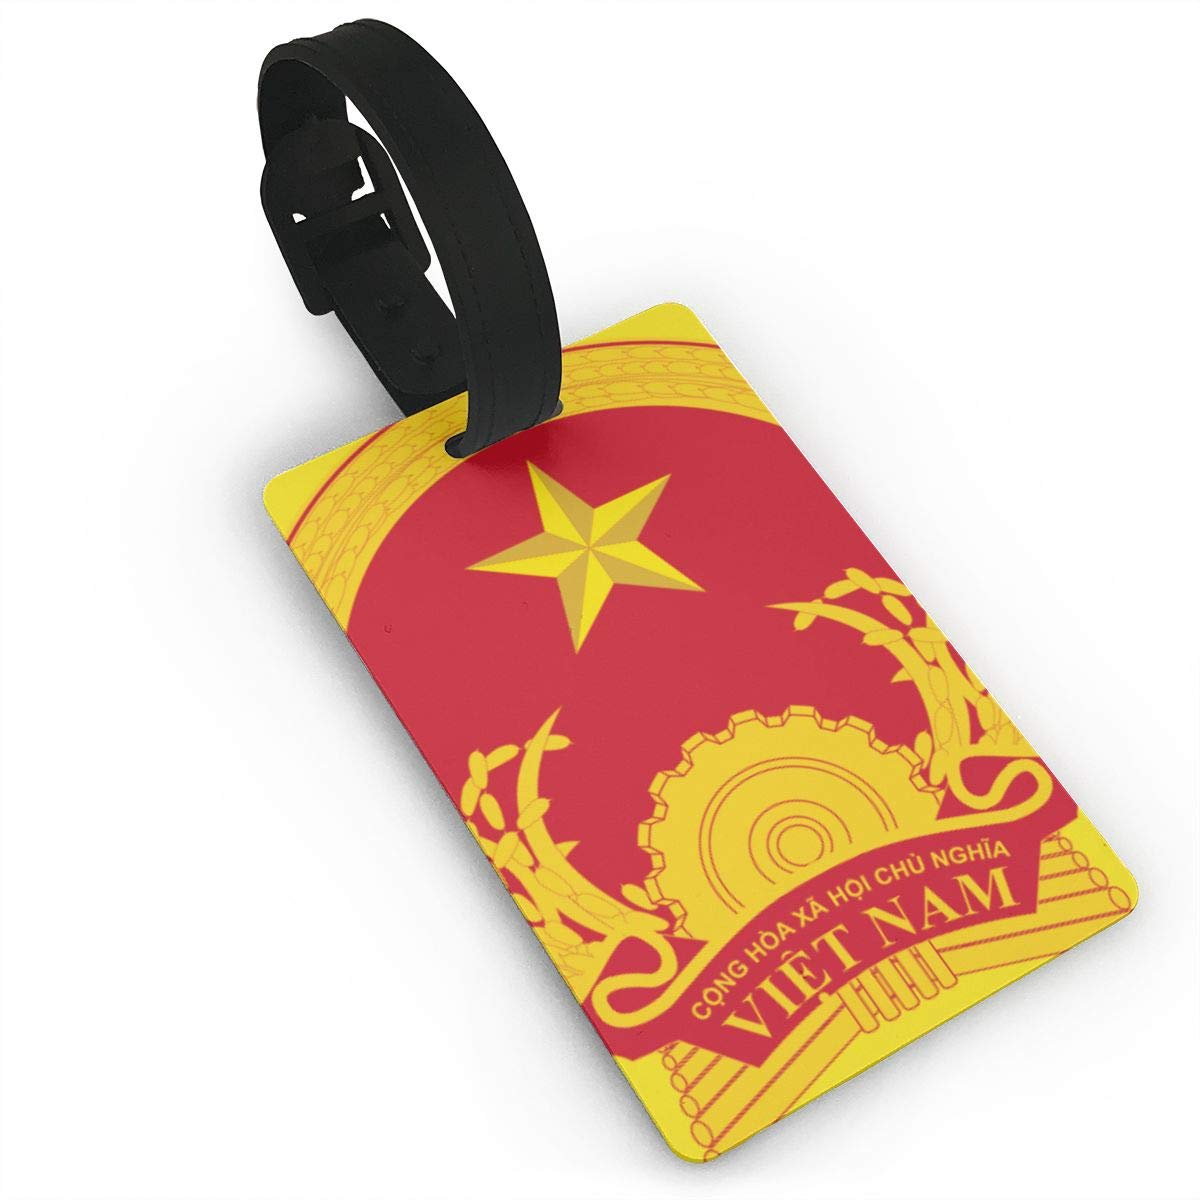 KODW12 Coat of Arms of Vietnam Luggage Tag Travel Bag Labels Suitcase Bag Tag Name Address Cards